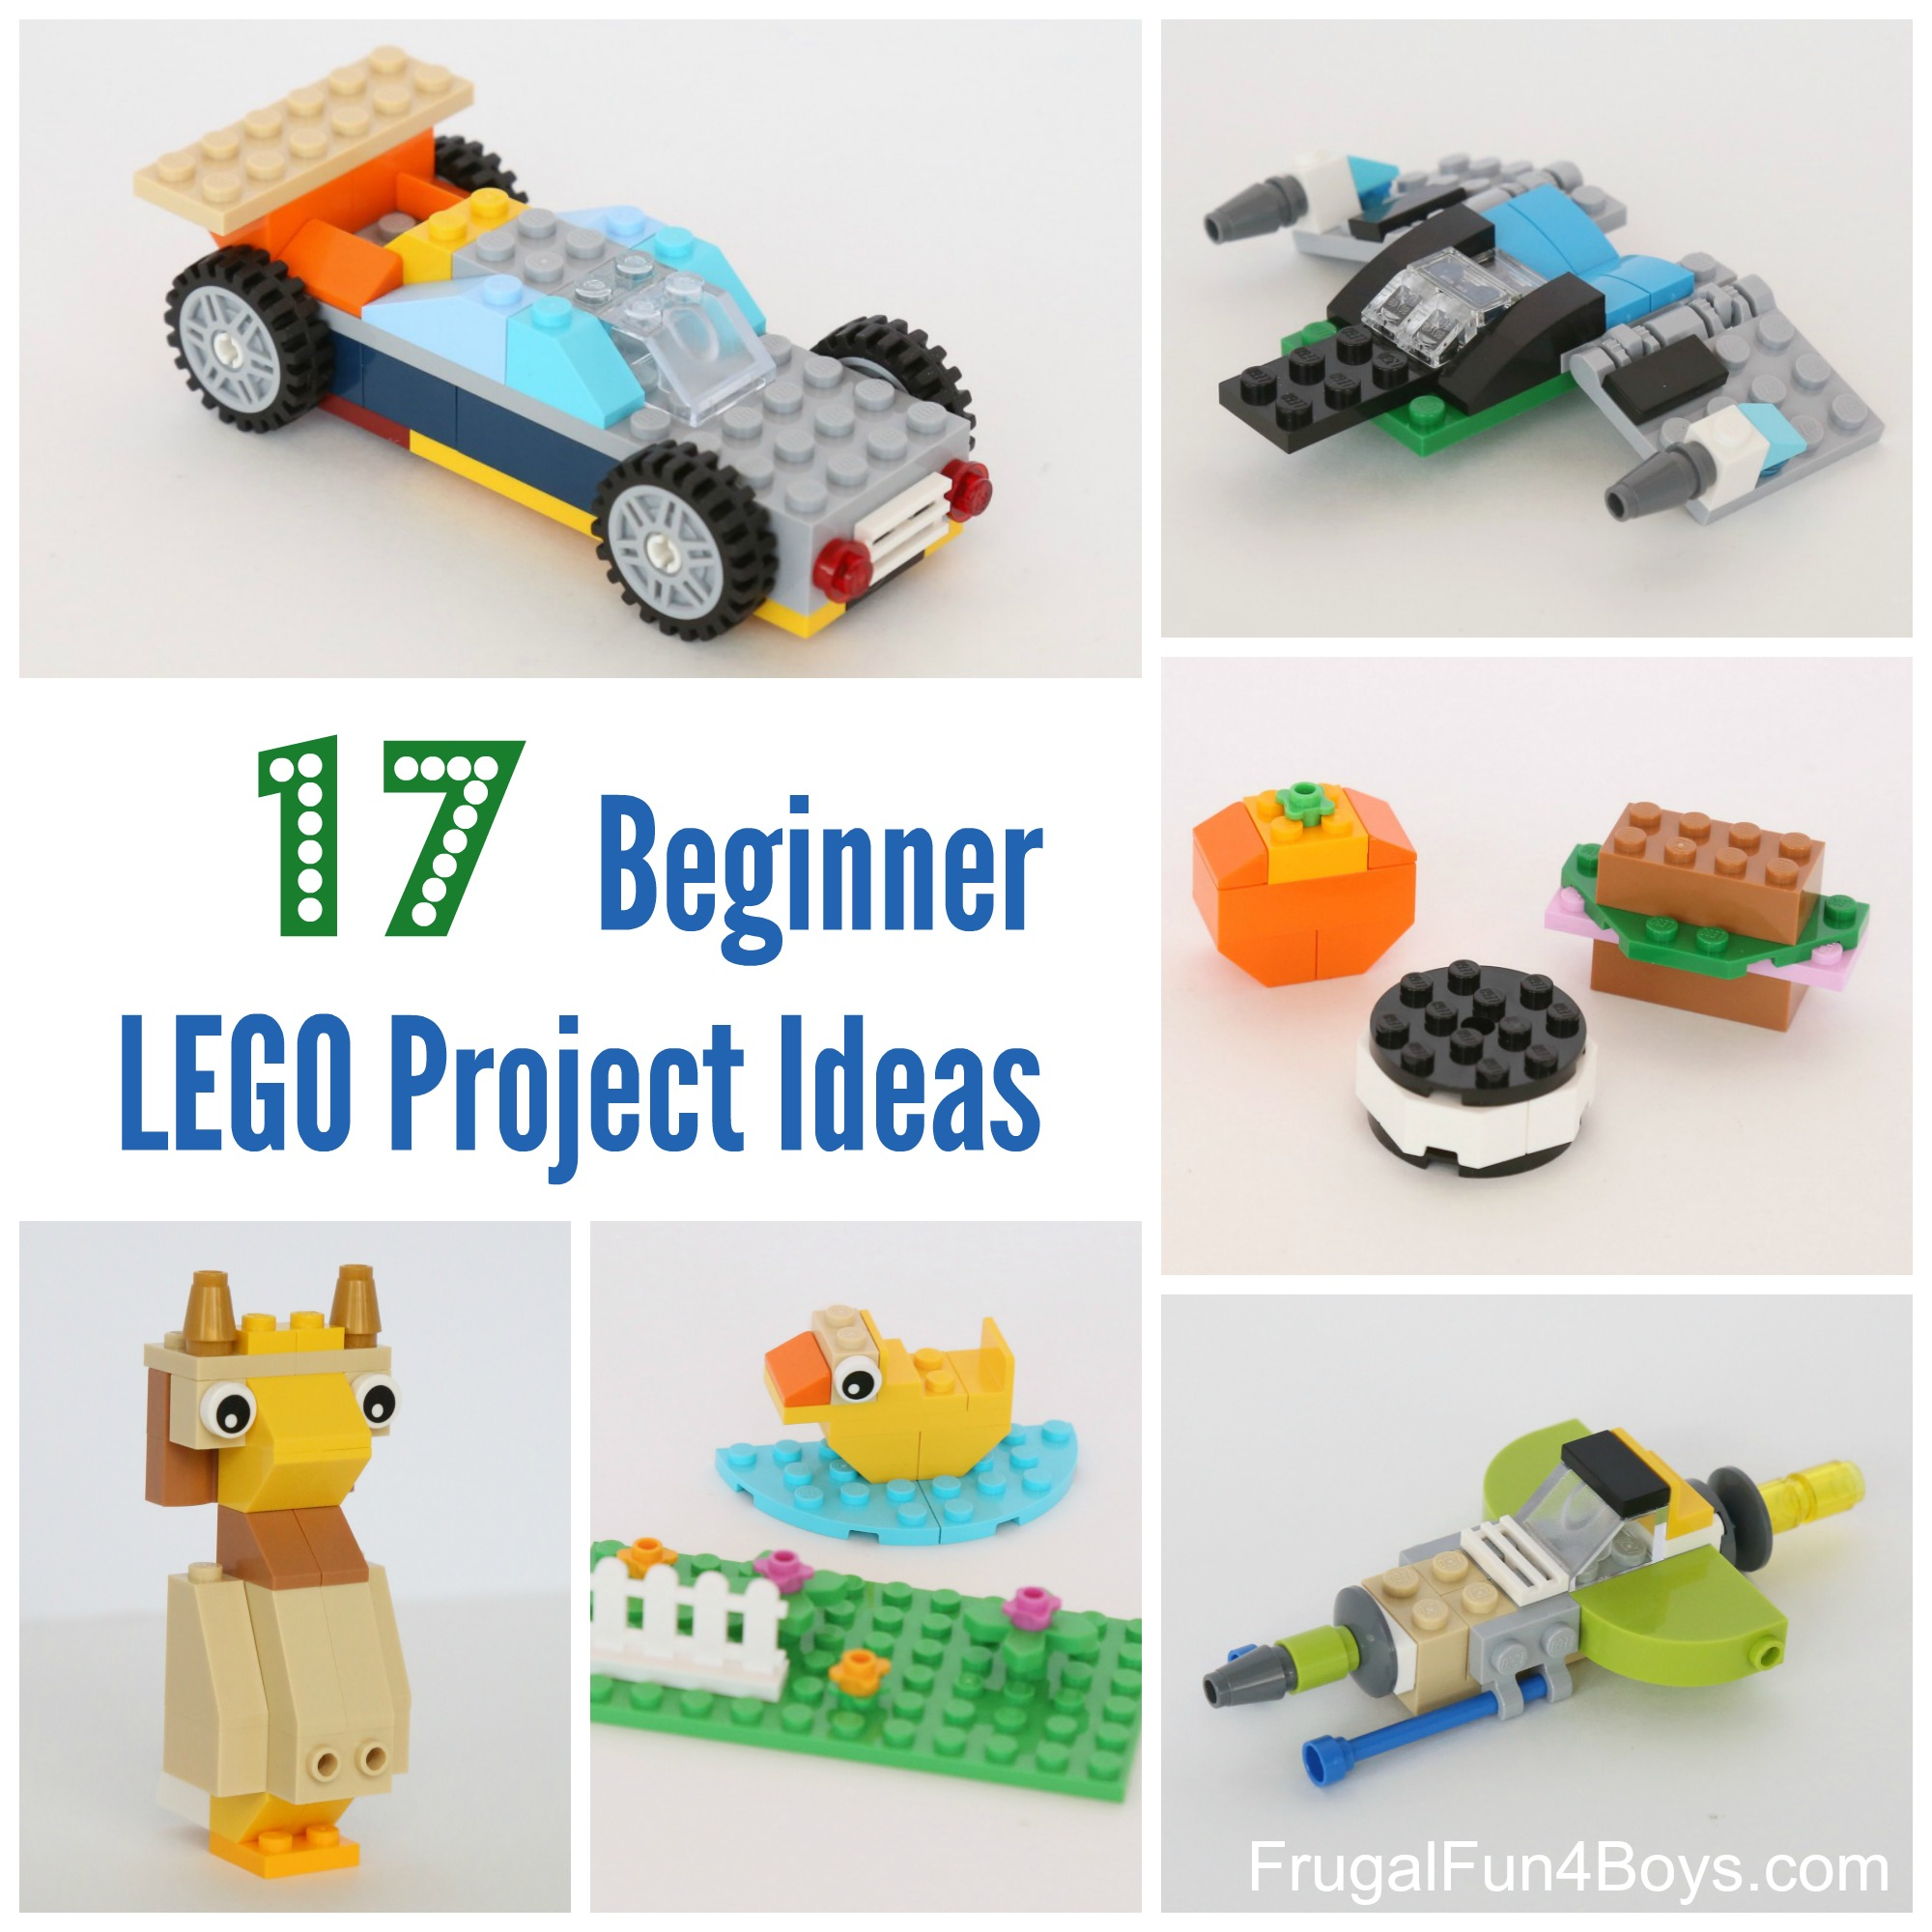 Beginner model does not want inside 2